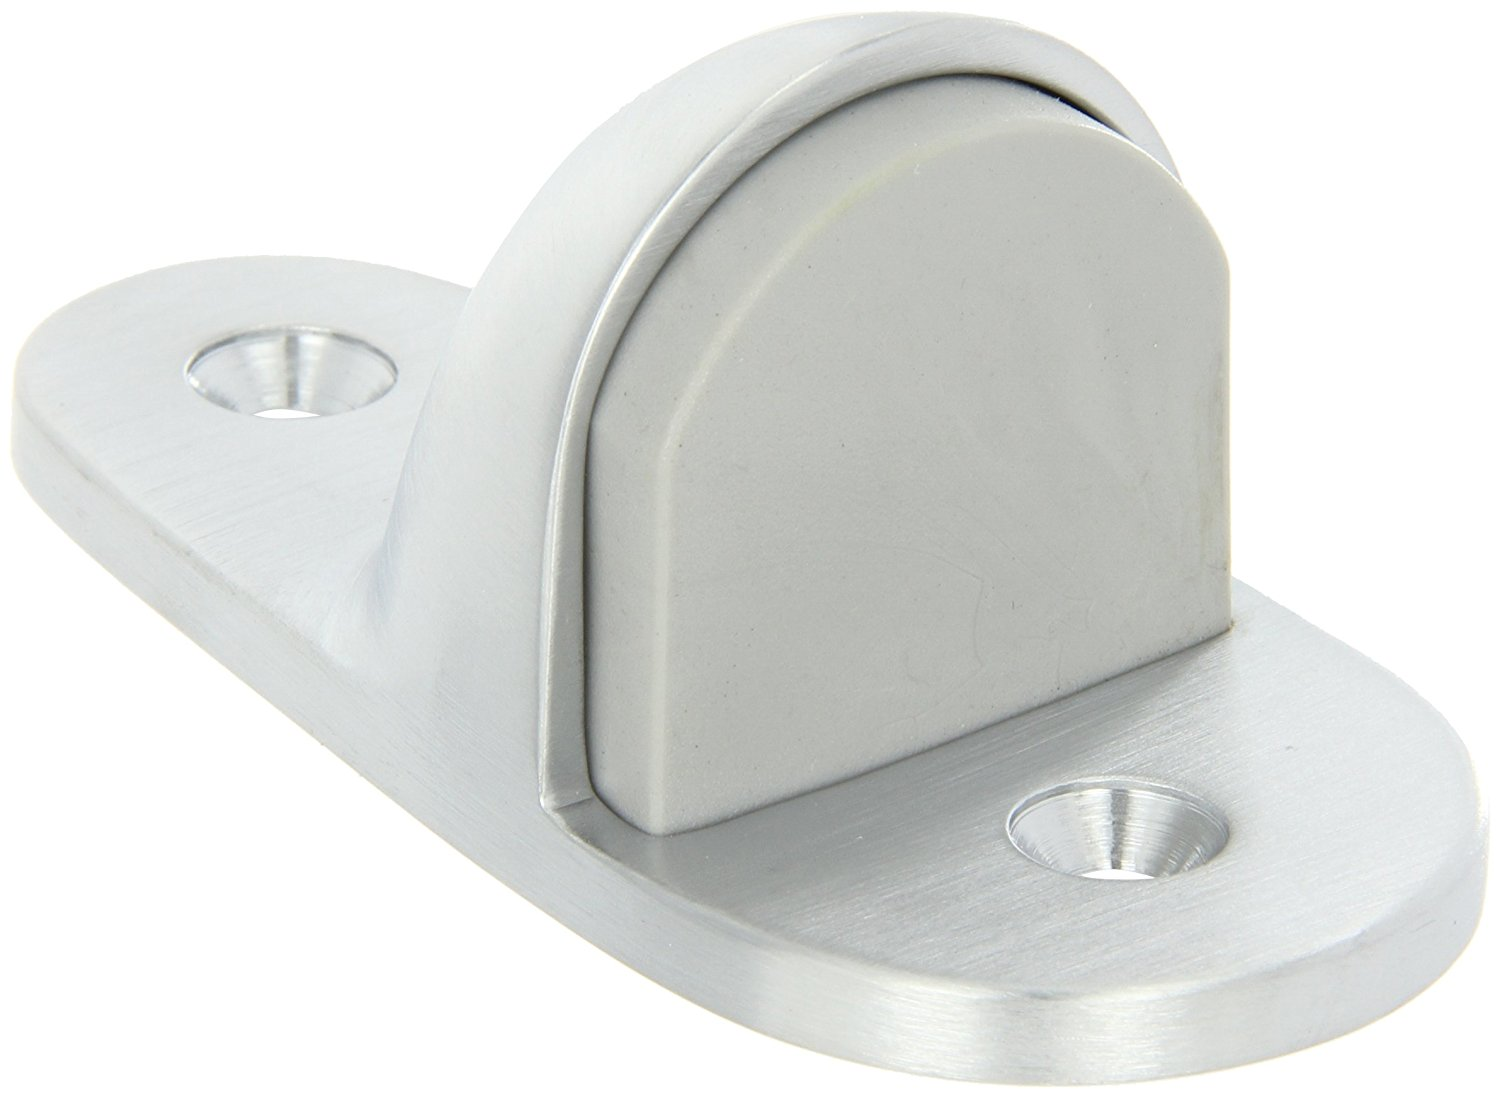 "Rockwood 445H.26D Brass Heavy Duty Door Stop, #12 X 1-1/2"" FH SMS Fastener with Plastic Anchor and 2-24 x 1"" FH MS Fastener with Lead Anchor, 2"" Base Width x 4"" Base Length, 1-11/16"" Height, Satin Chrome Plated Finish"